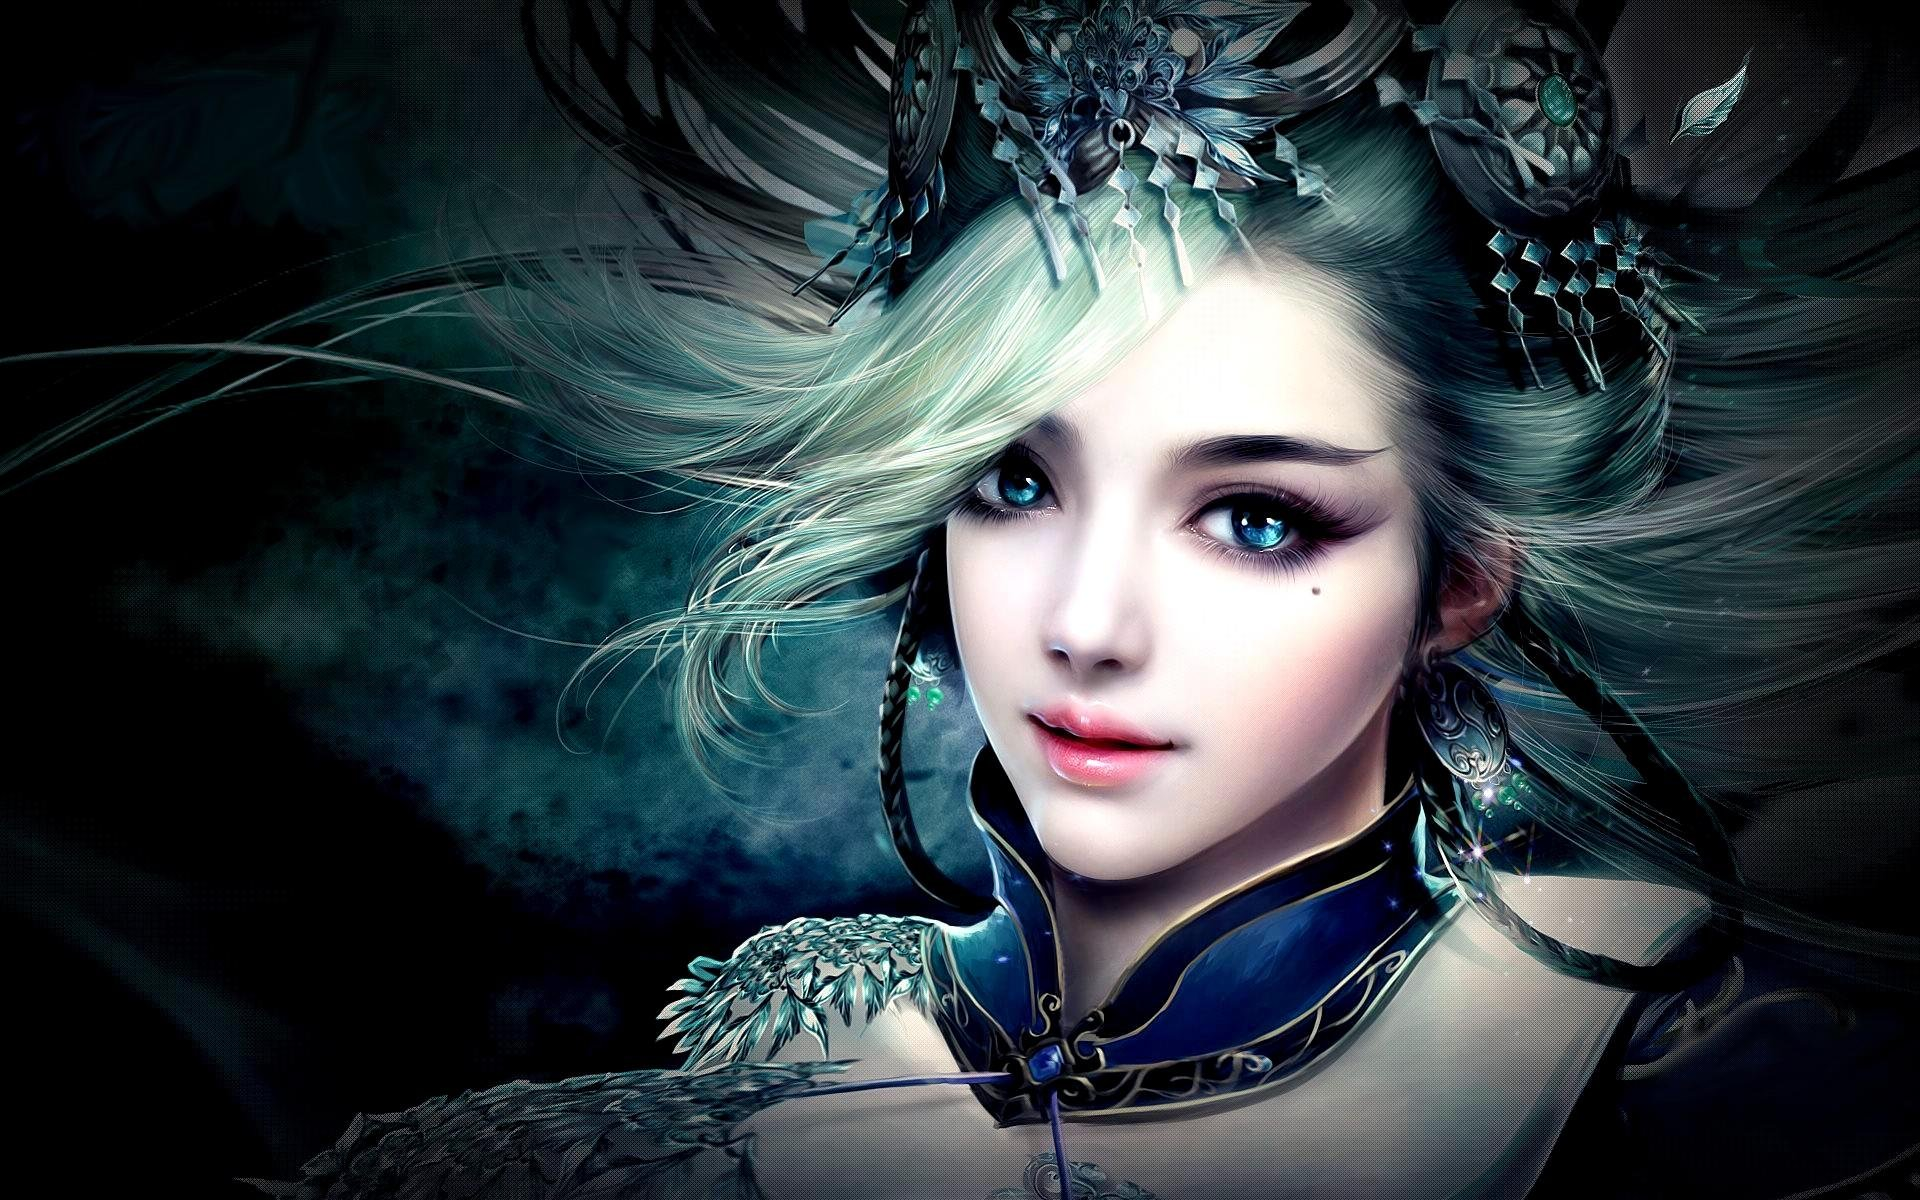 princess - pretty art 3d fantasy girl wallpaper | 1920x1200 | 551582